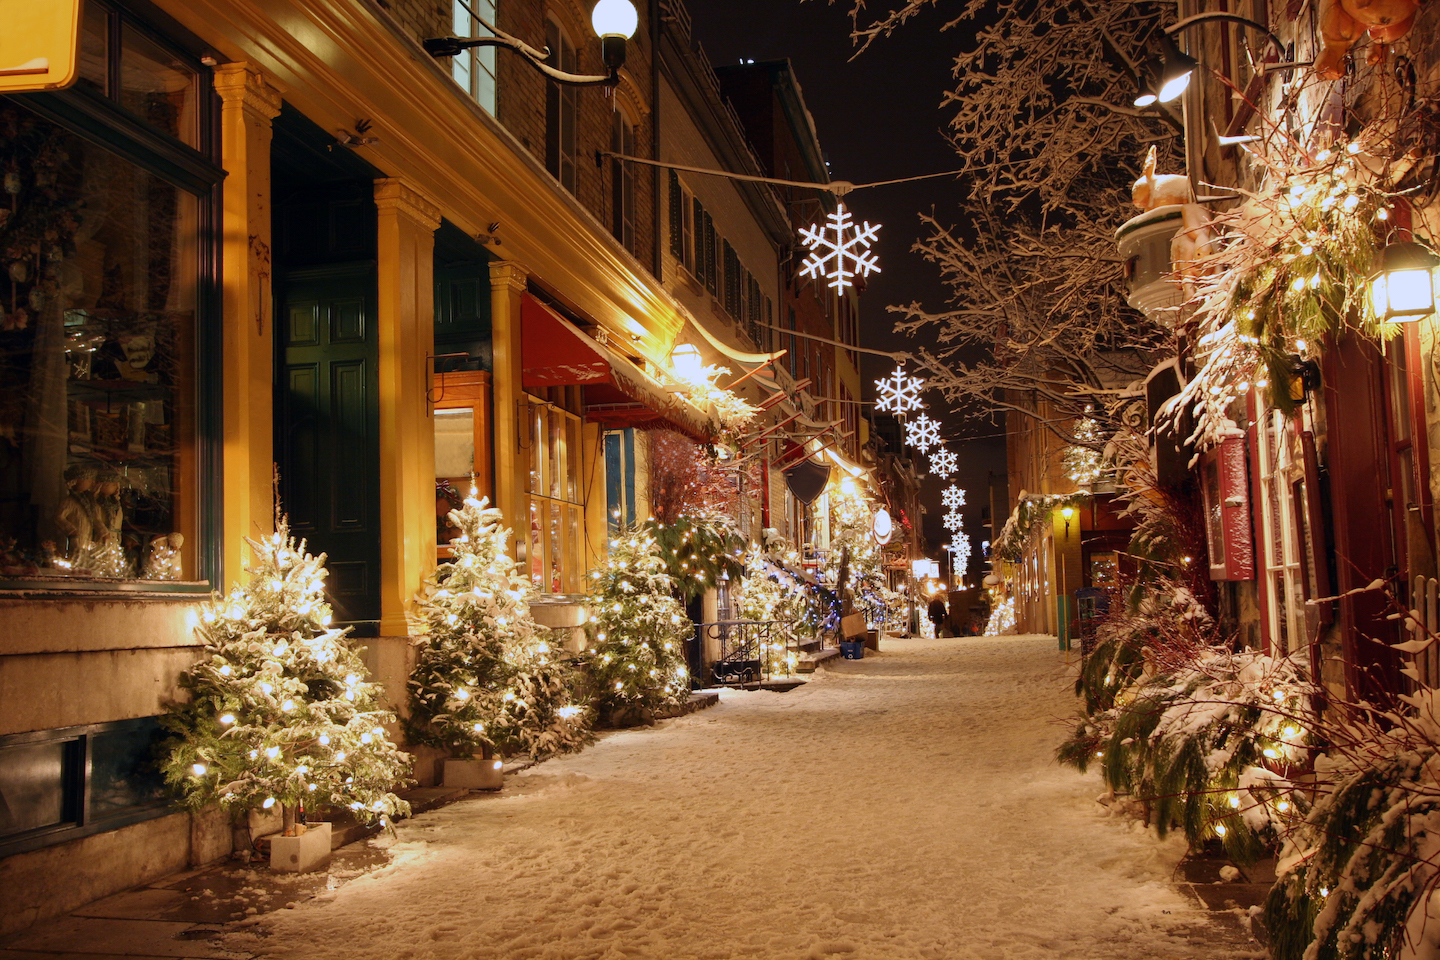 How Businesses Can Prepare For the Busy Holiday Season